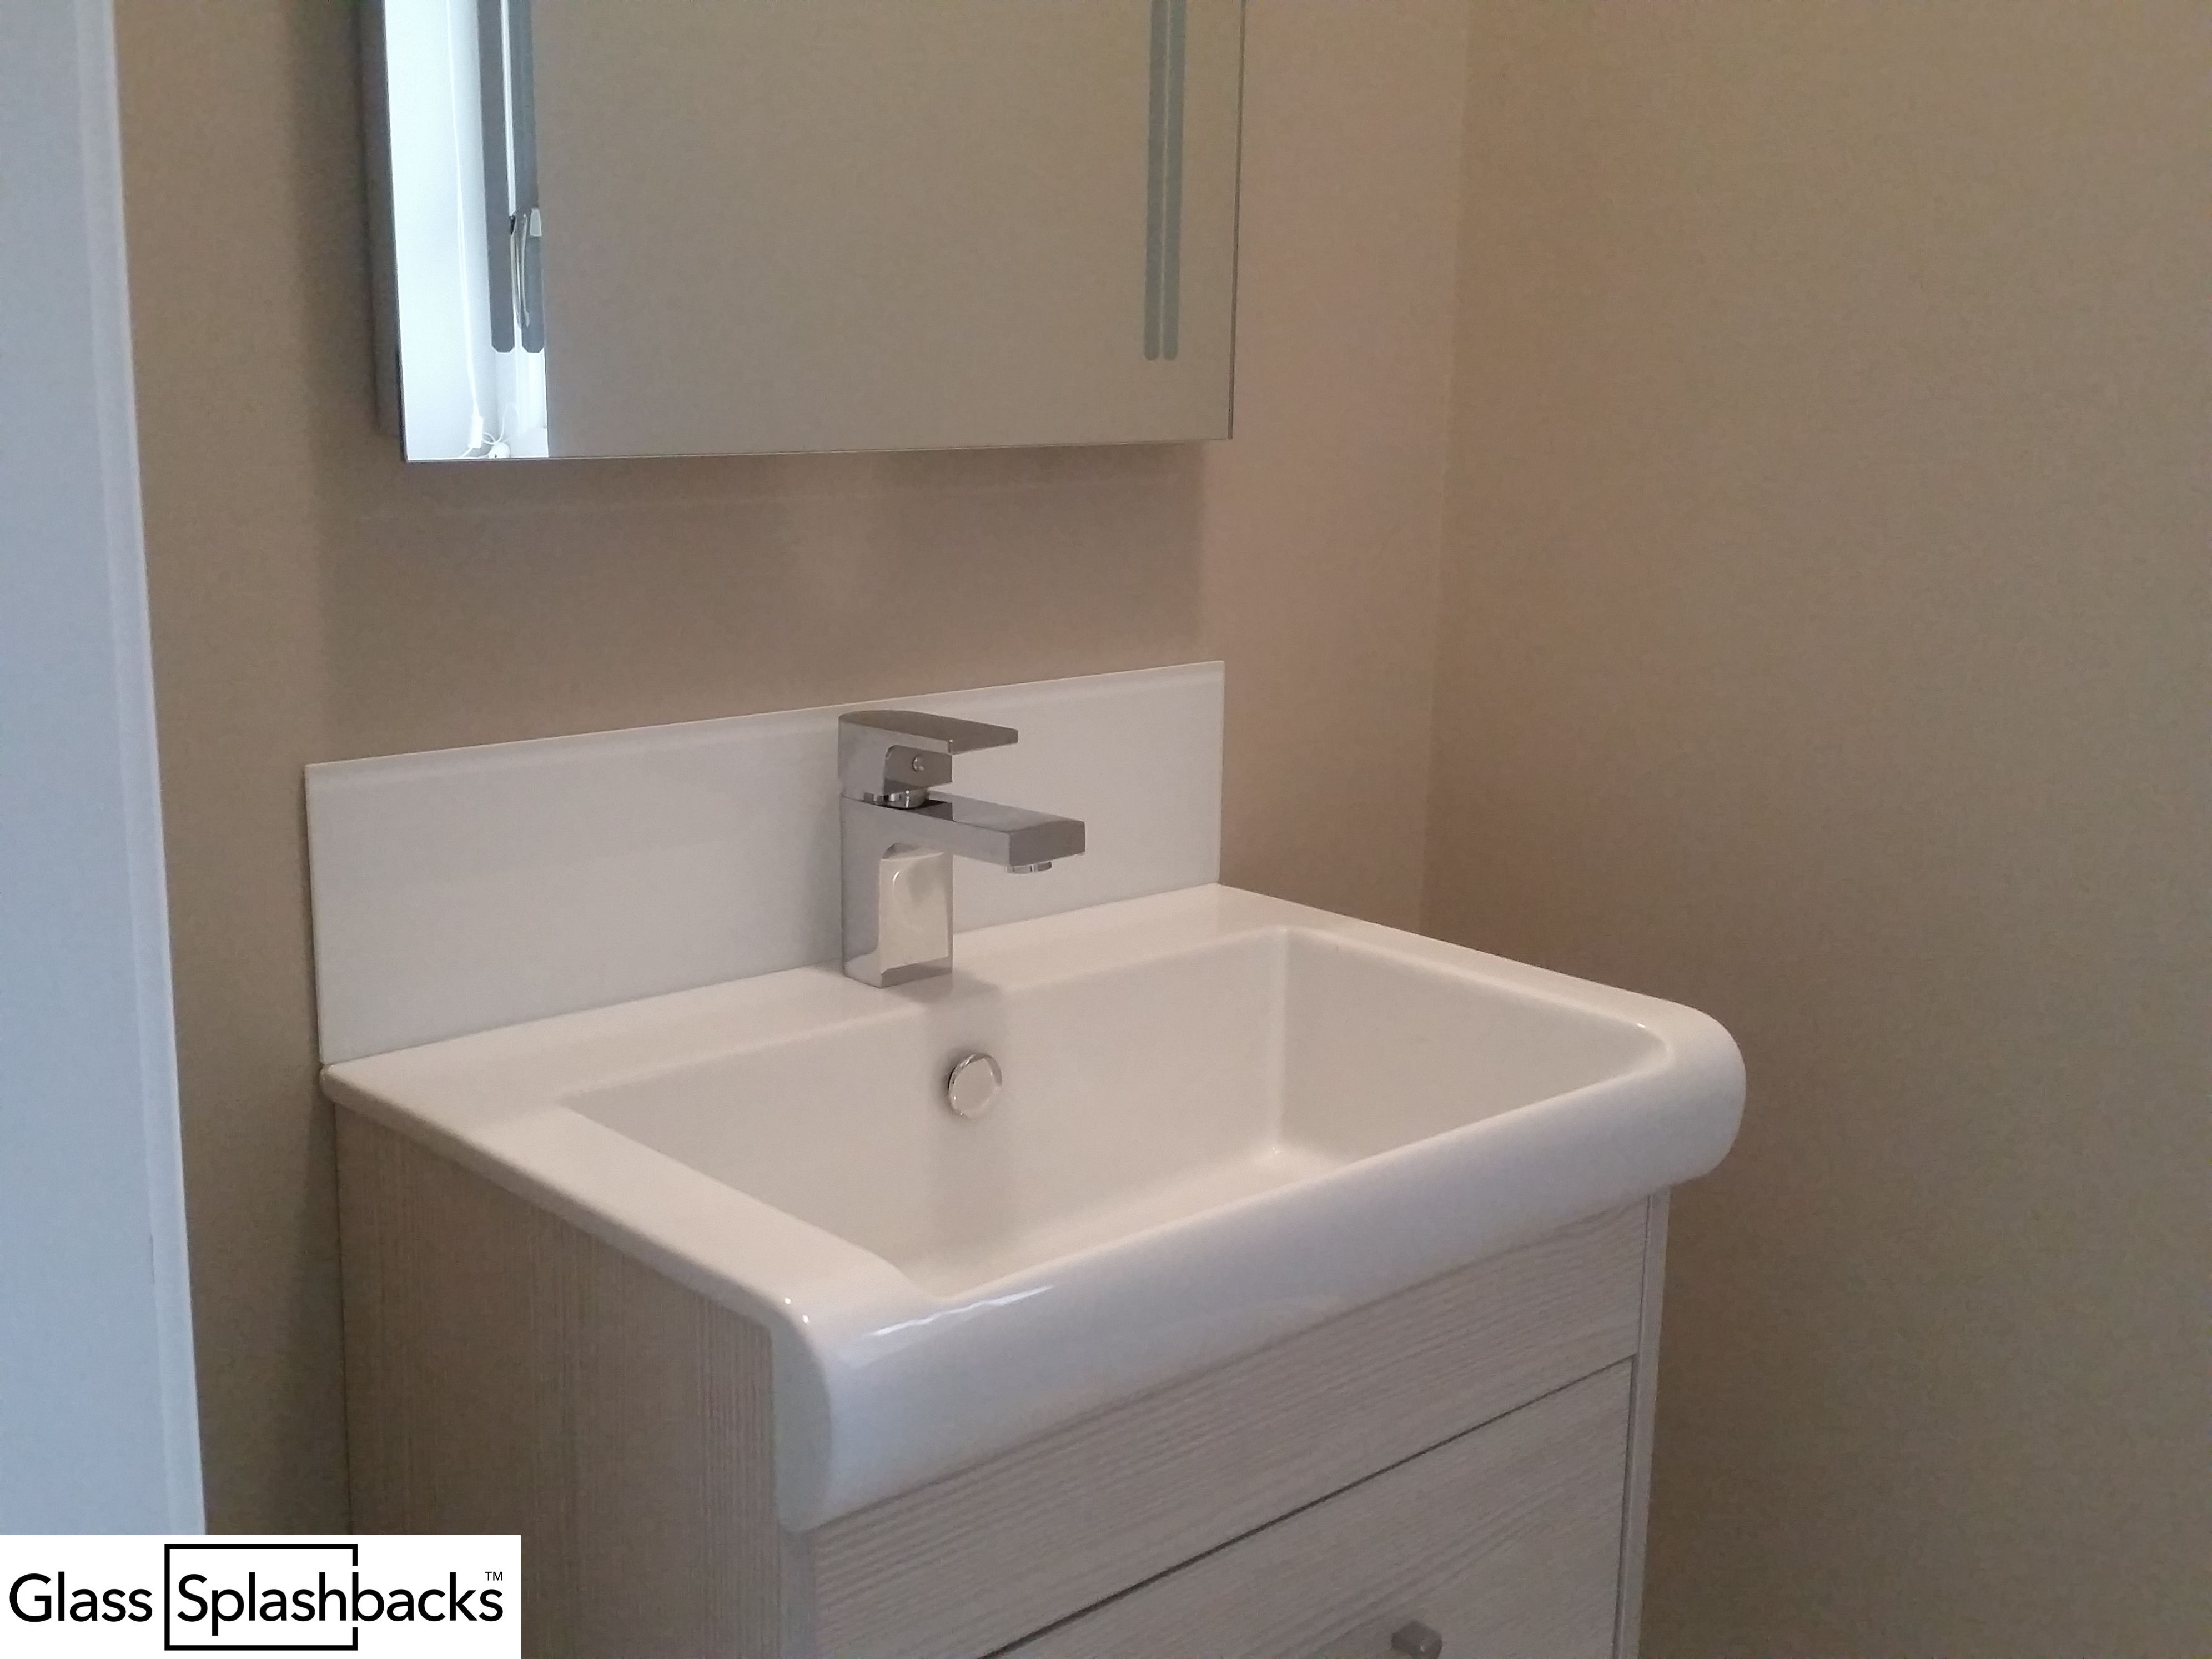 The perfect solution behind sinks glass splashbacks are inexpensive and easy to fit essentially